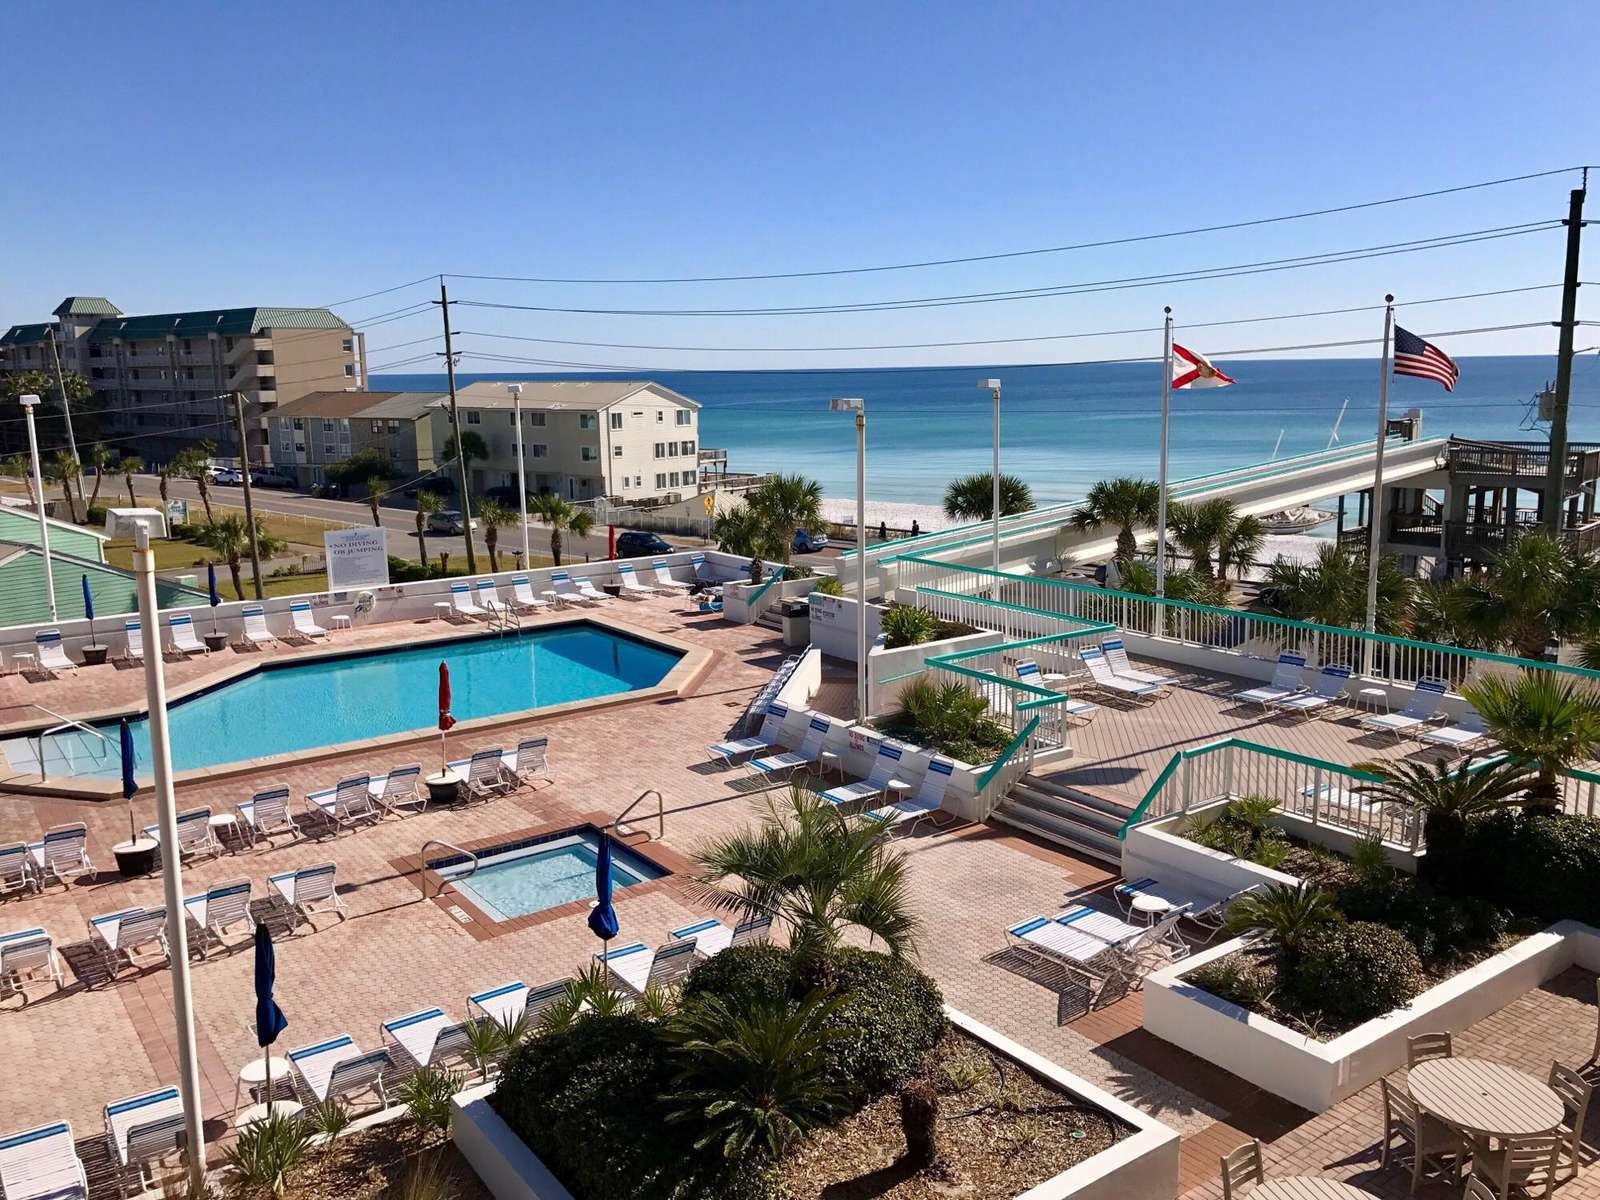 The pool deck features a large pool, 2 hot tubs, kiddie pool, tiki bar, saunas, and beach road walk over.